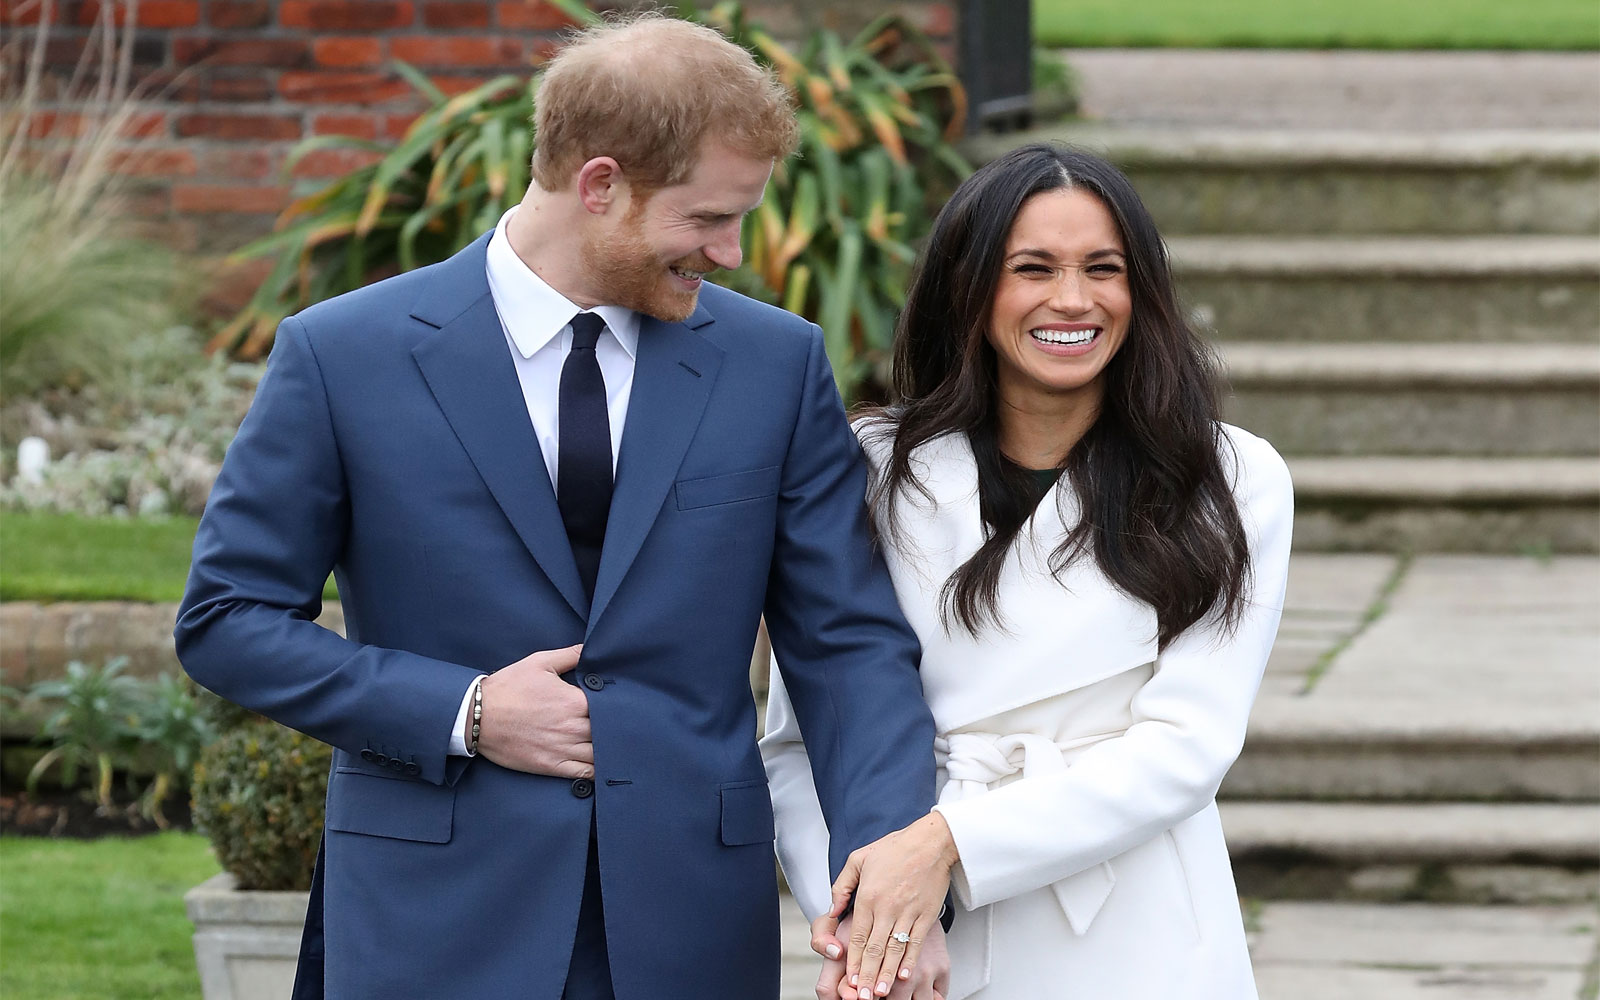 How to See Prince Harry and Meghan Markle's Royal Wedding